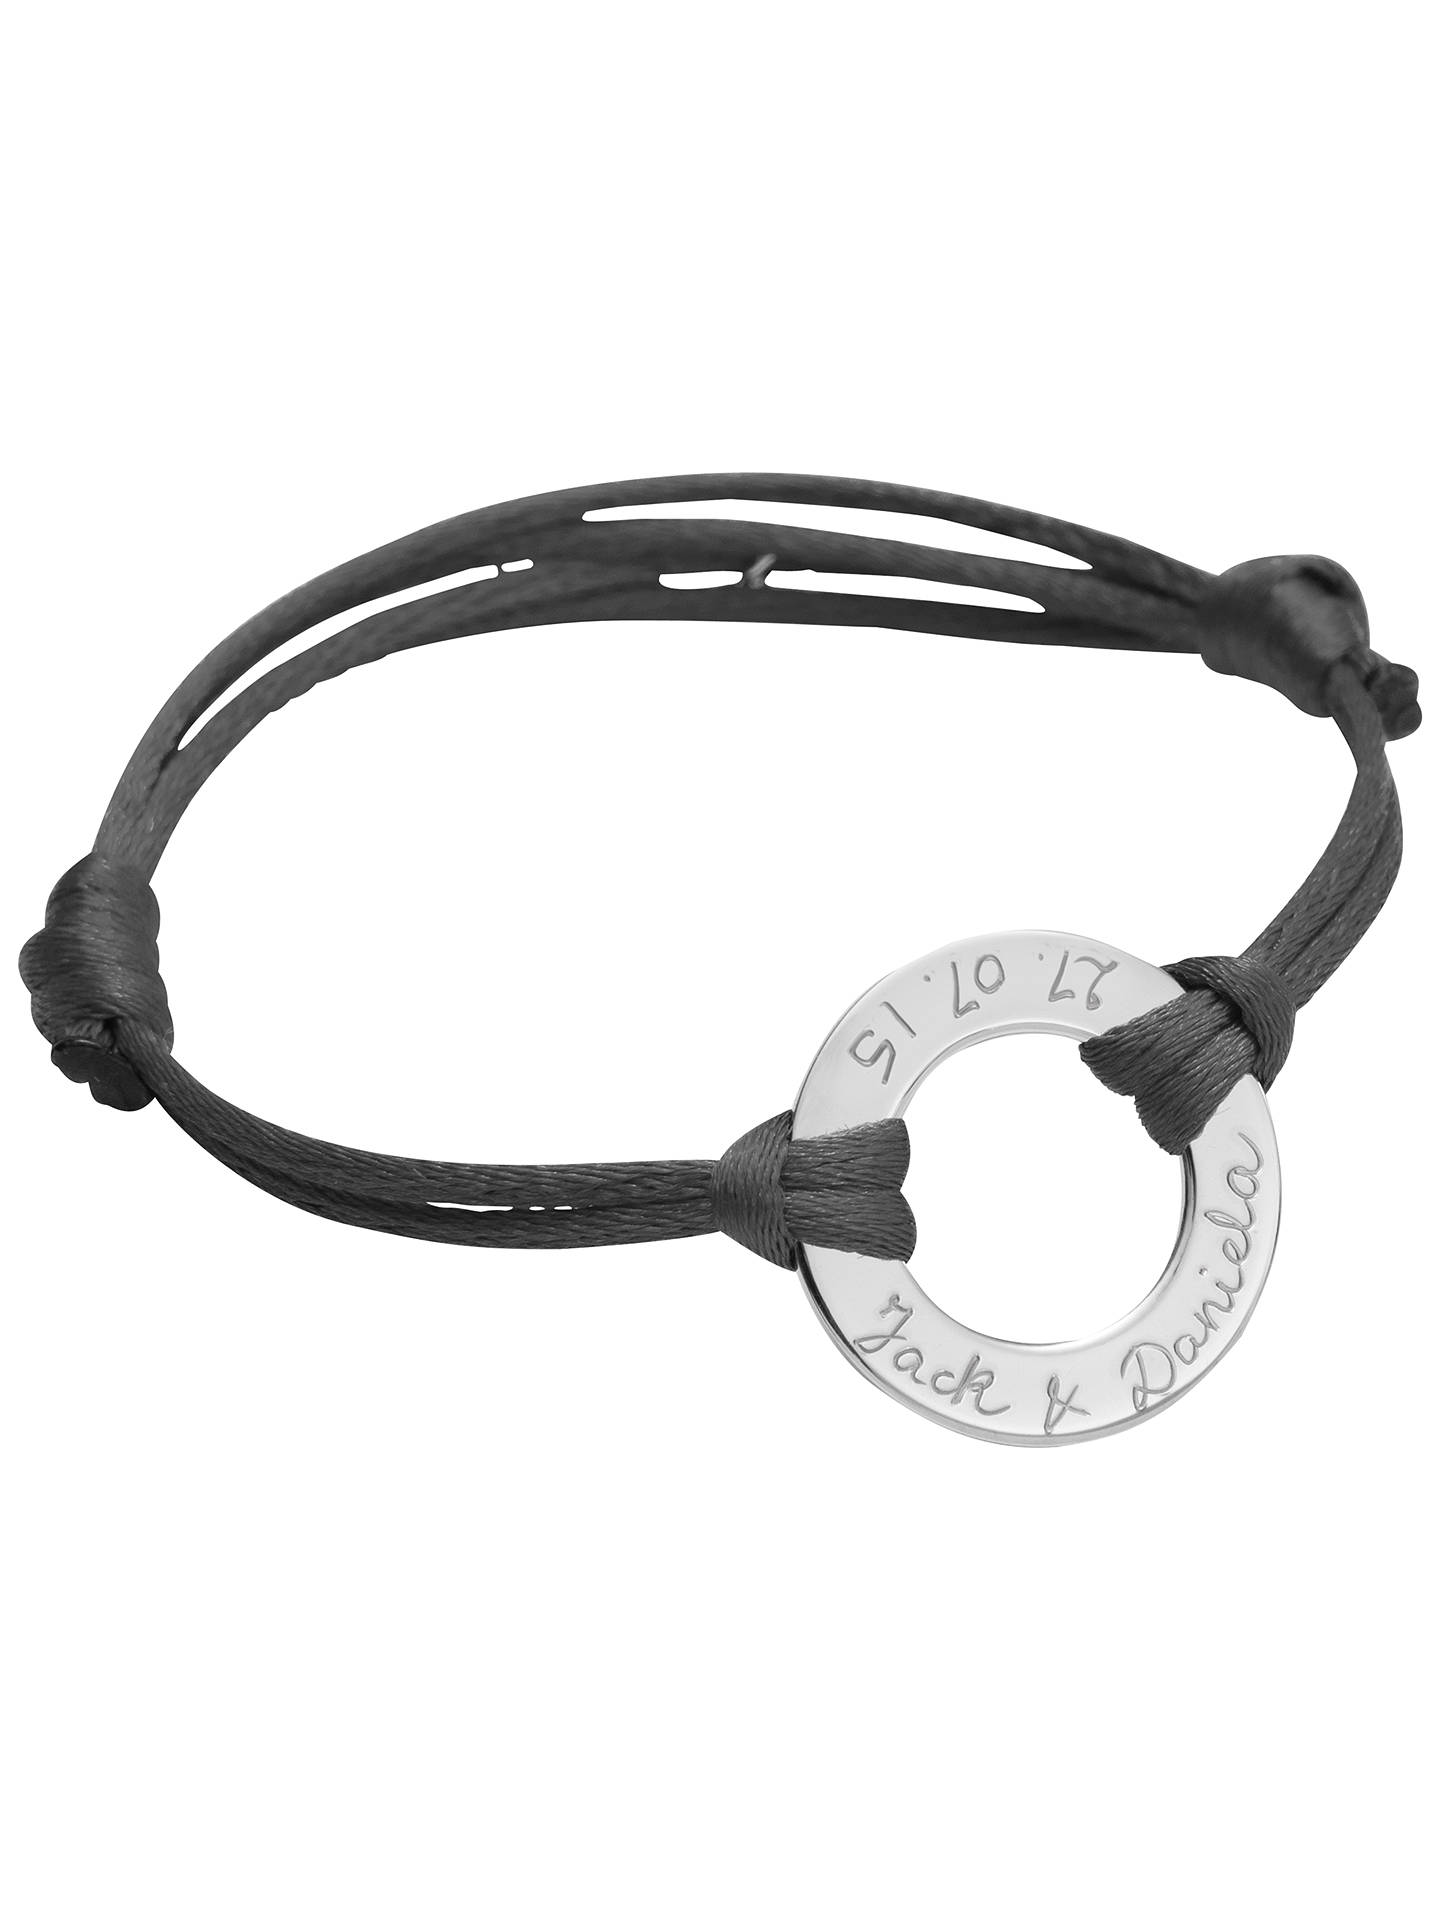 Buy Merci Maman Personalised Sterling Silver Eternity Bracelet, Dark Grey Online at johnlewis.com